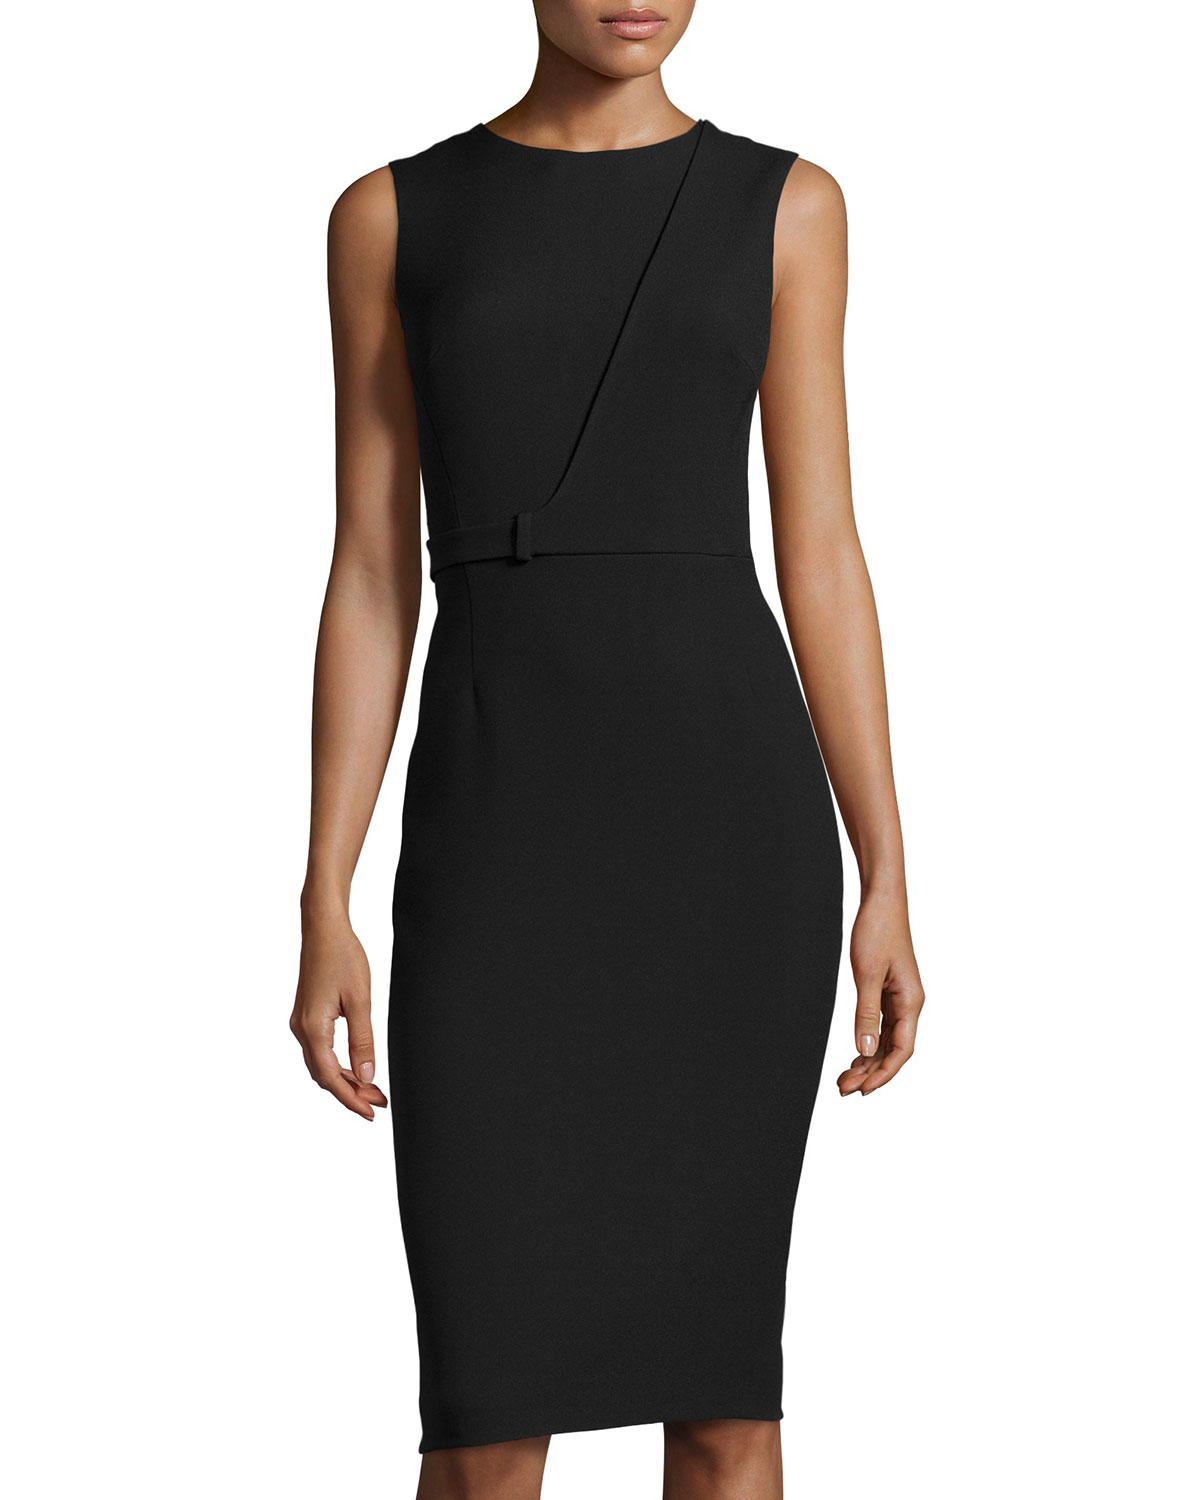 Jason wu Cascade Fitted Sheath Dress in Black | Lyst